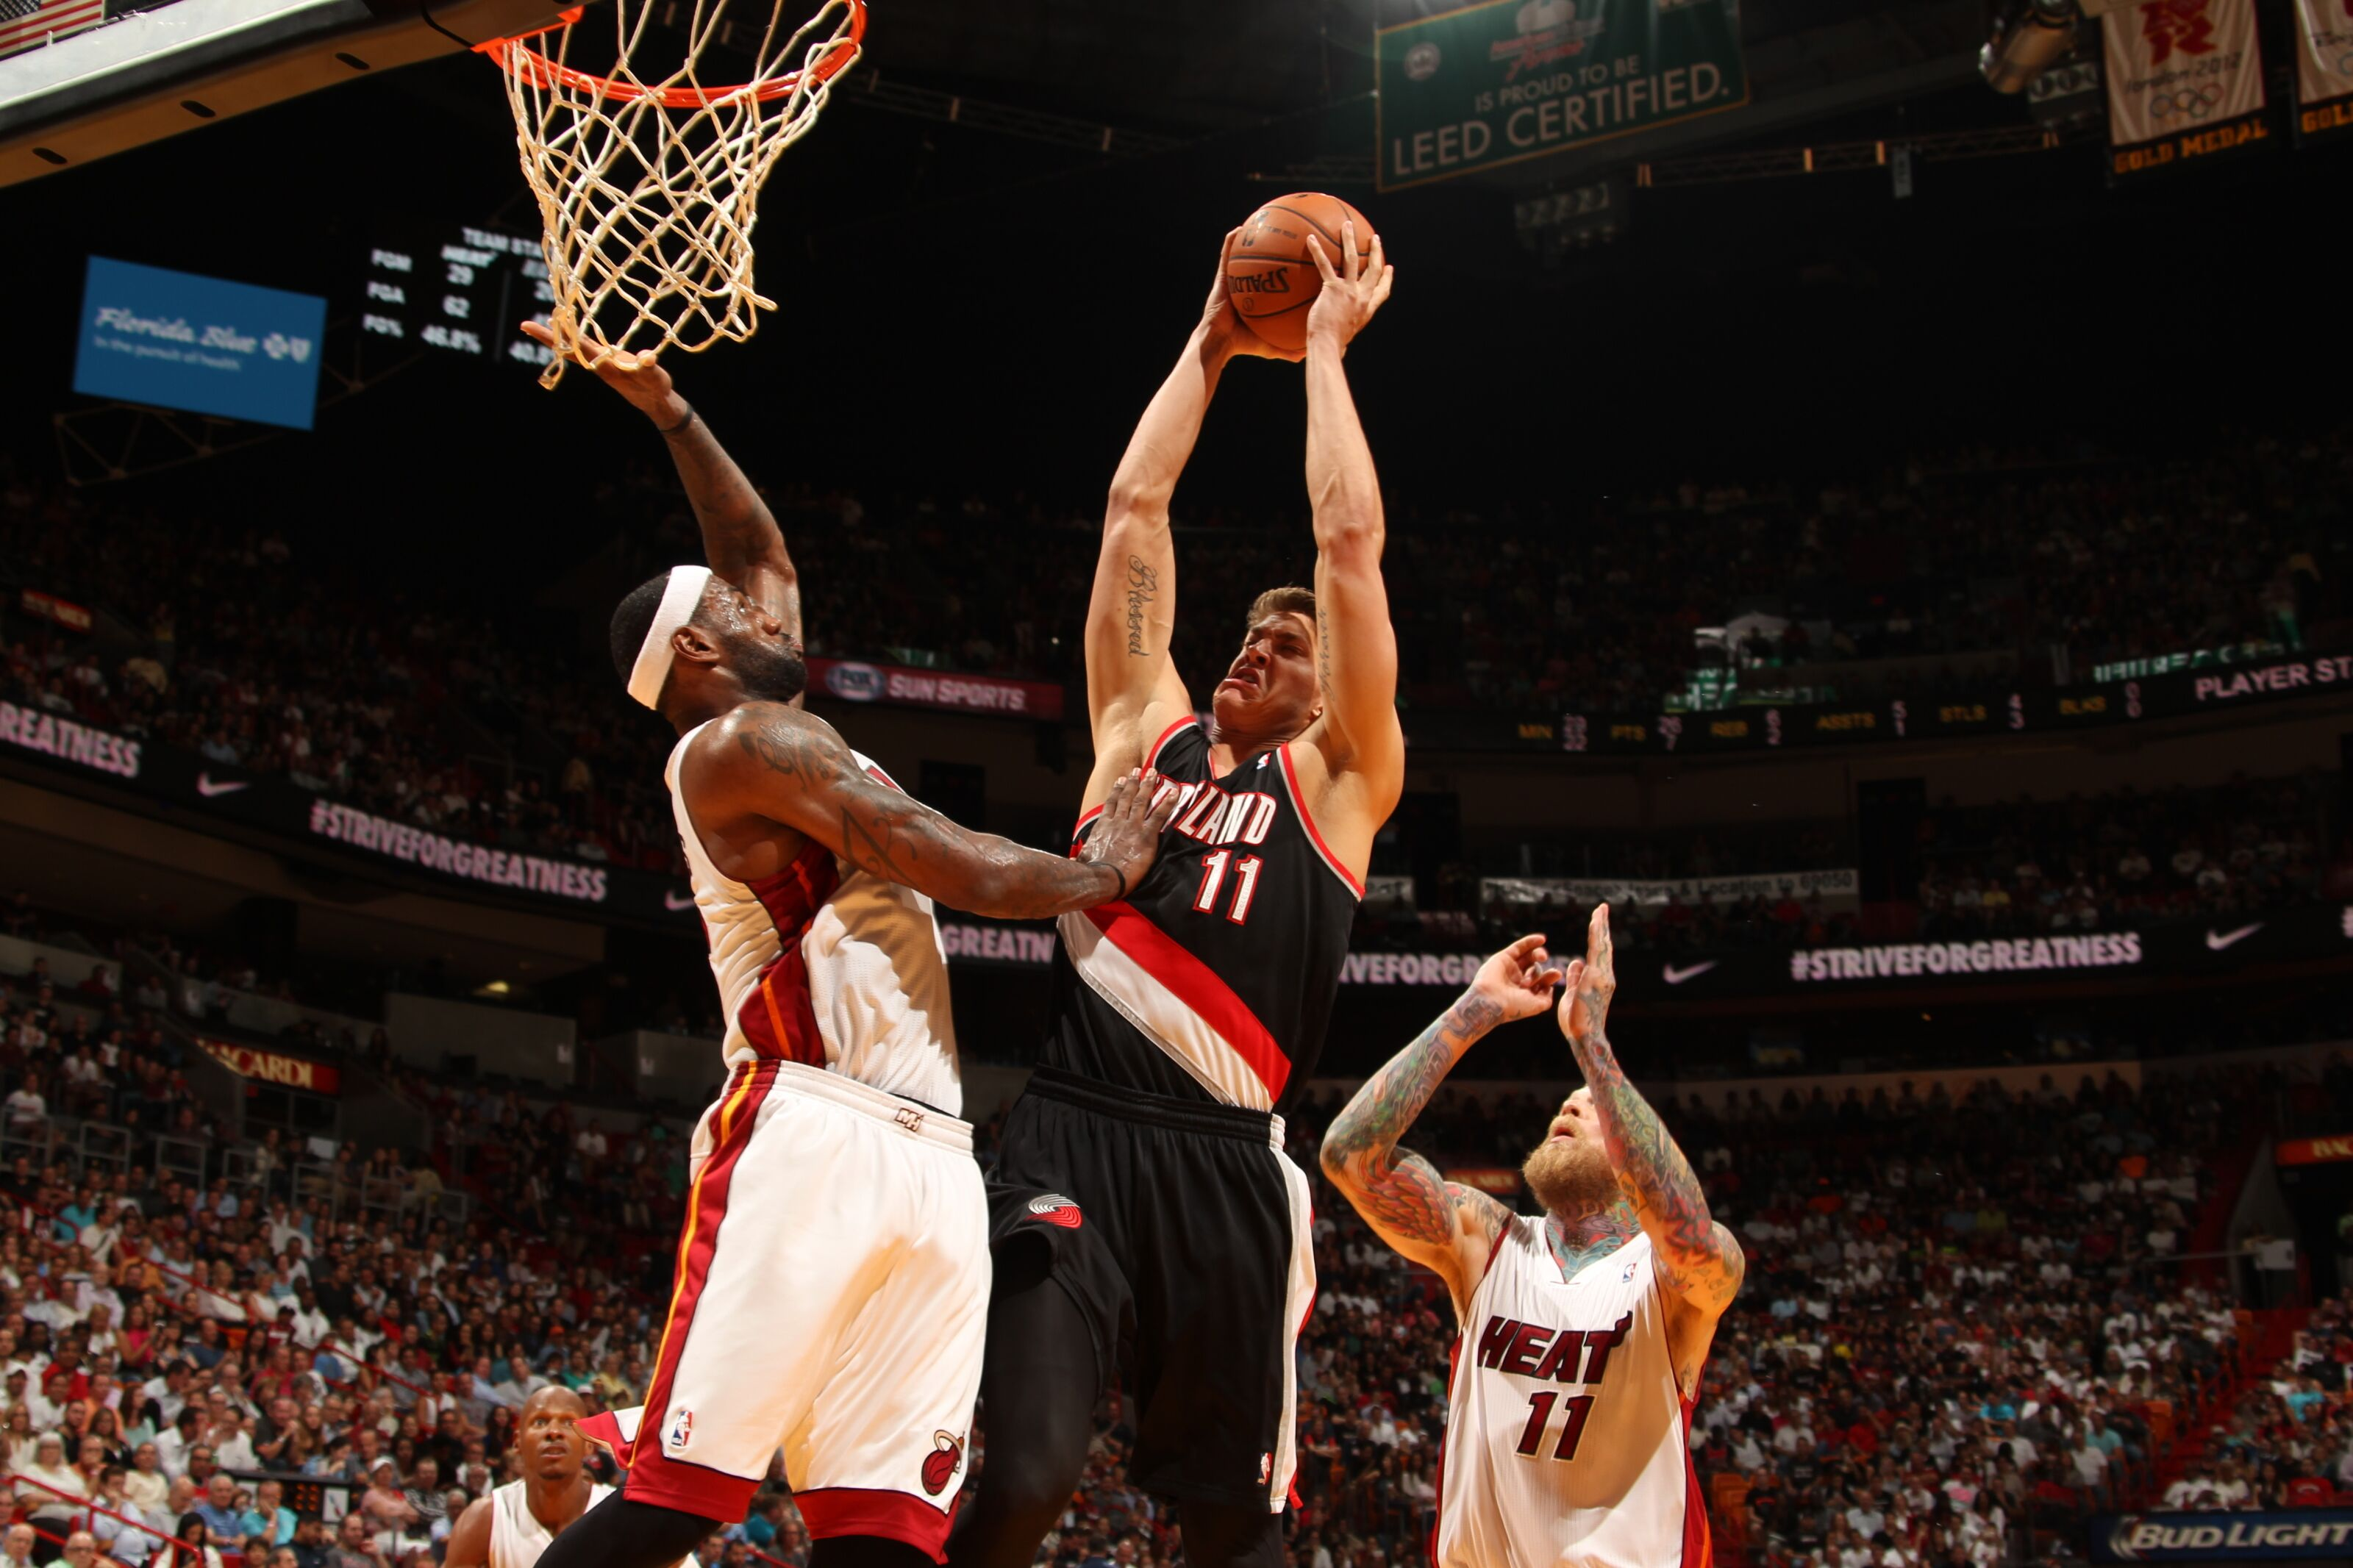 Miami Heat: Meyers Leonard showing what he can bring to the team